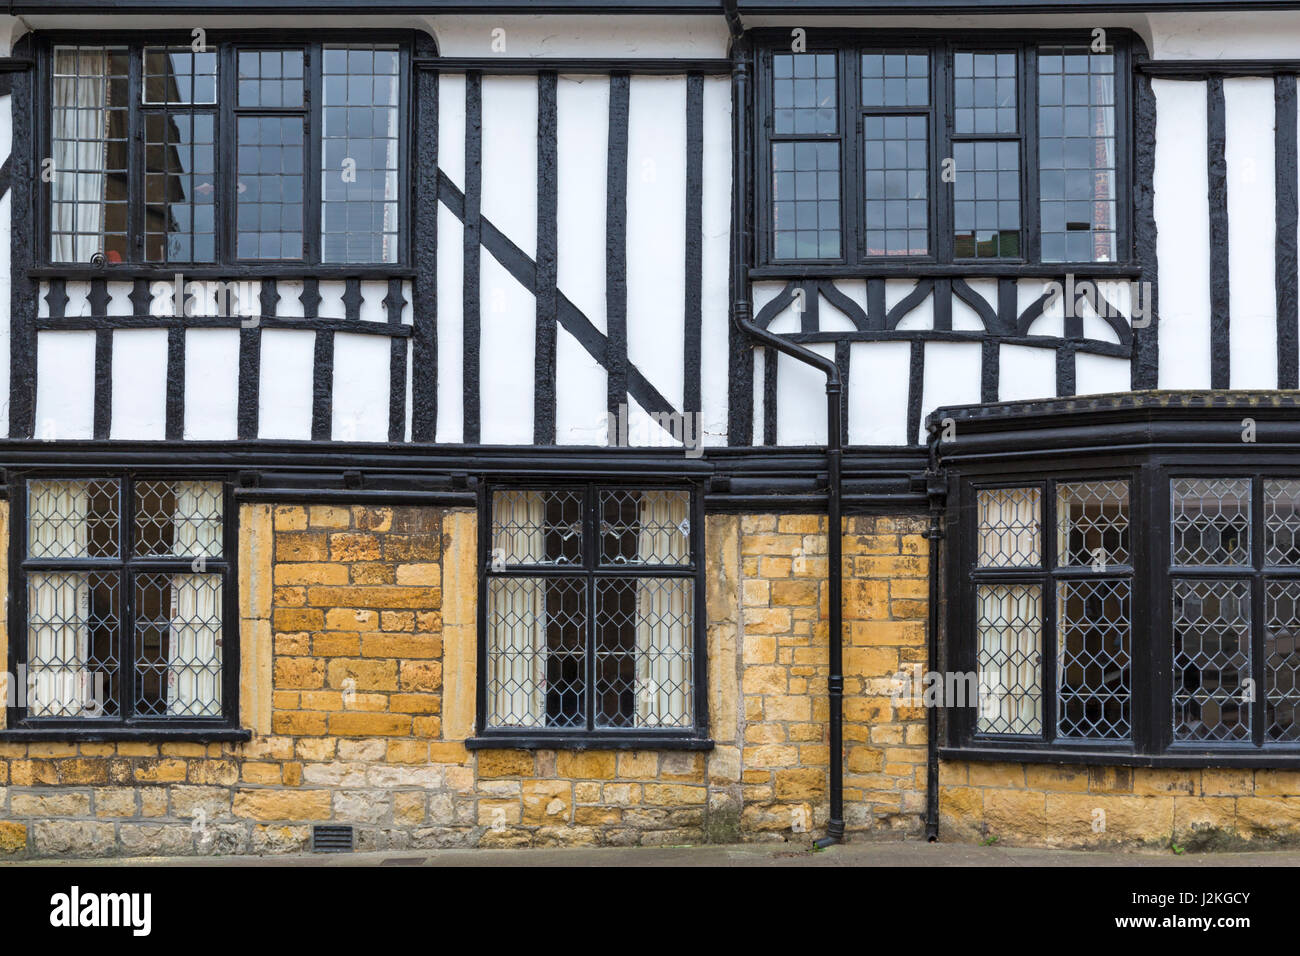 detail of traditional half-timbered buildings at Cheap Street, Sherborne, Dorset, England UK in April - Stock Image